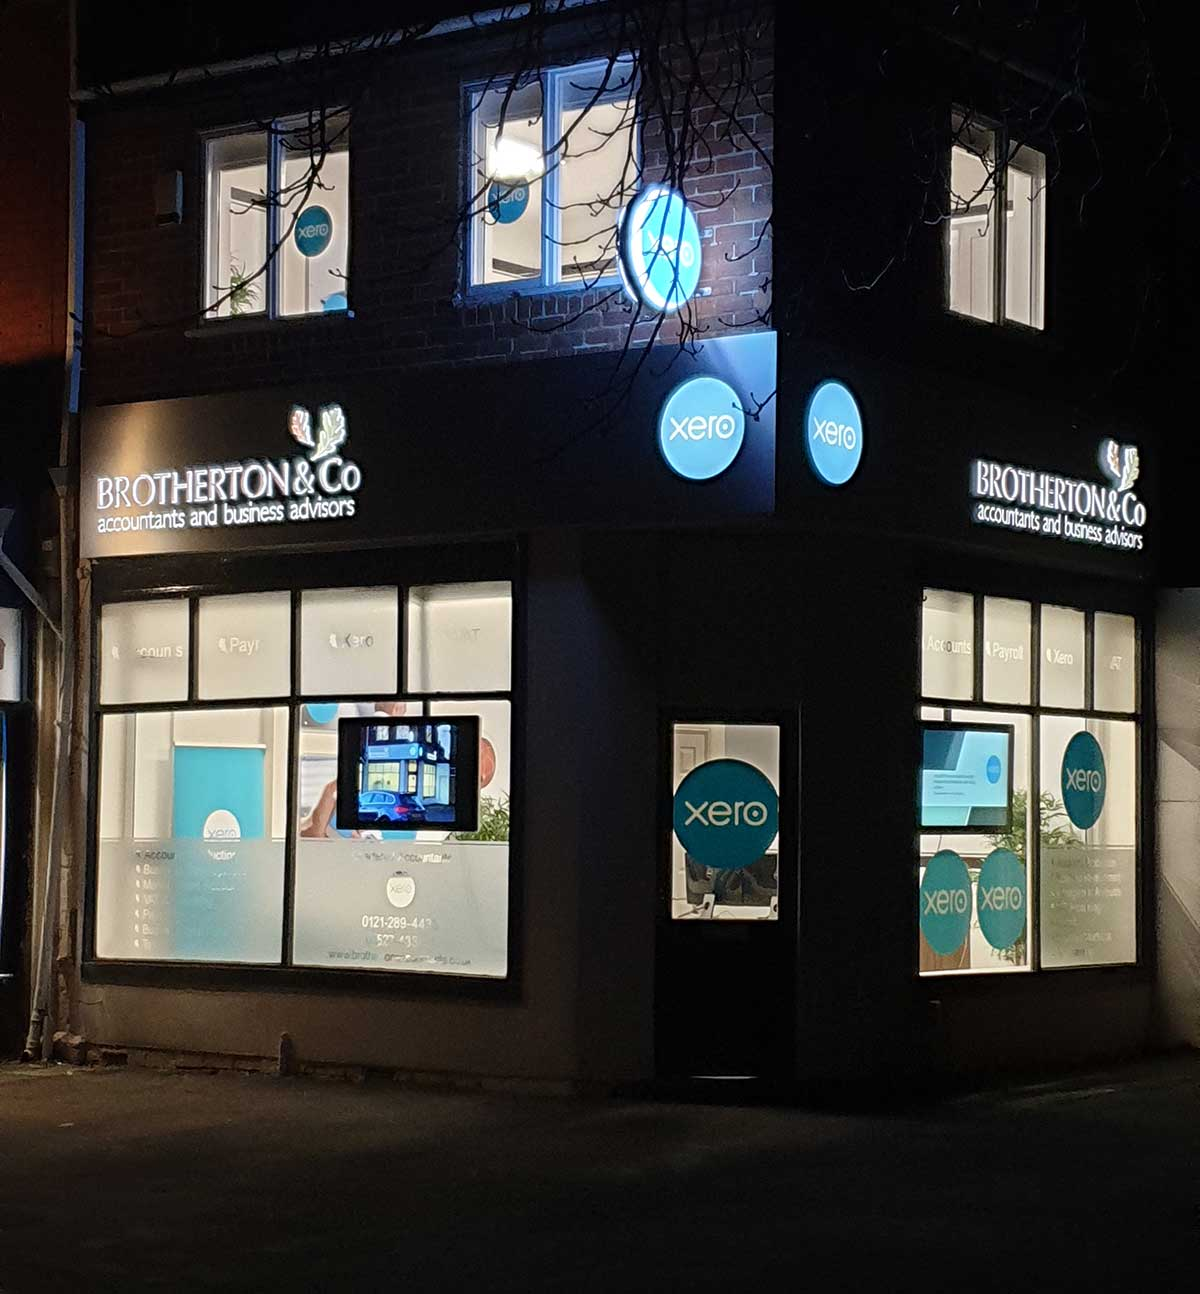 Brotherton Accountants Solihull Office